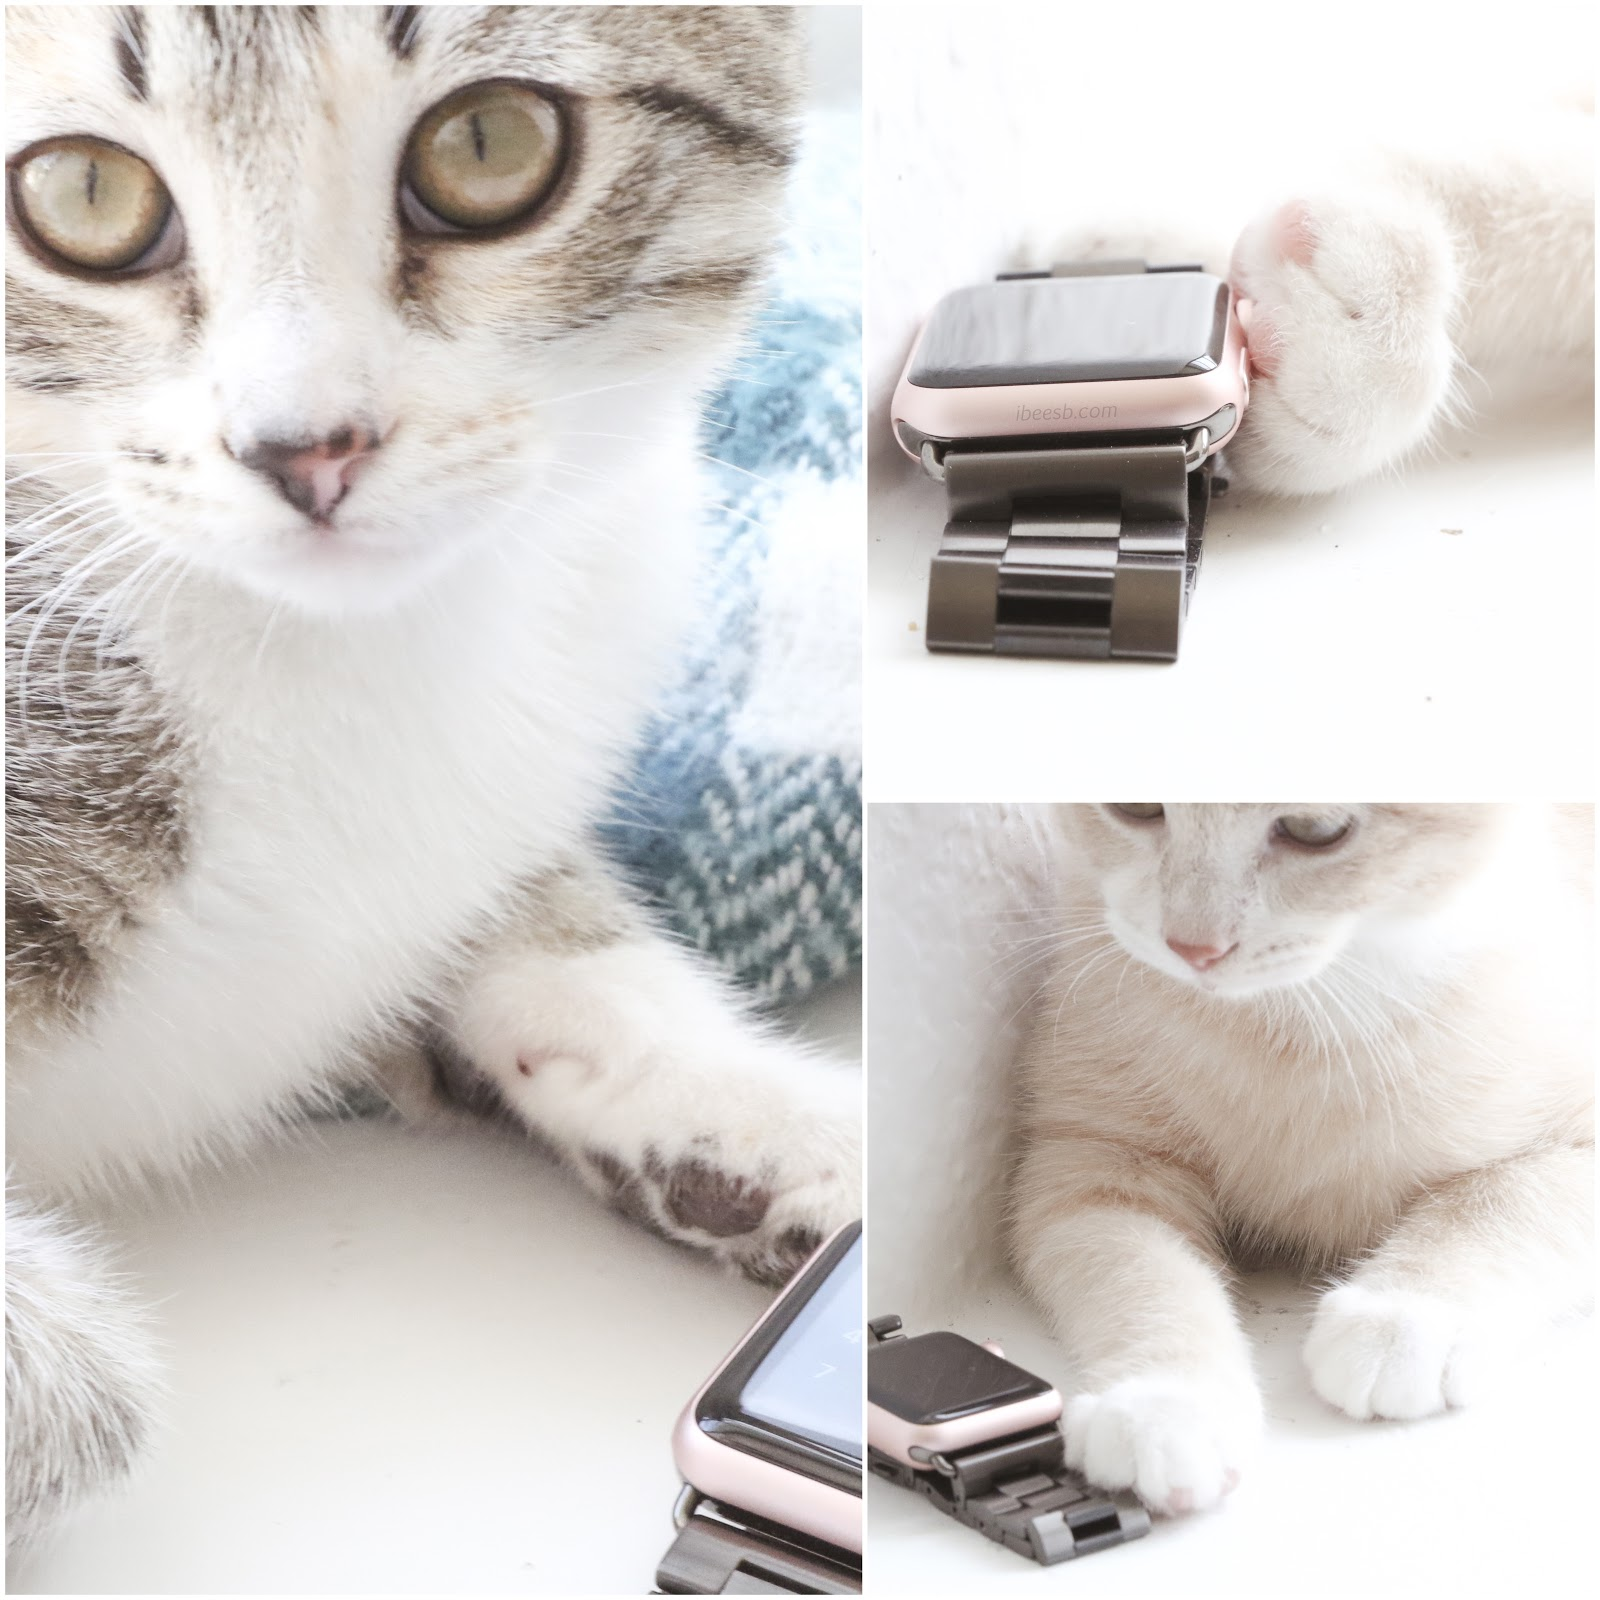 Cats and Apple Watch